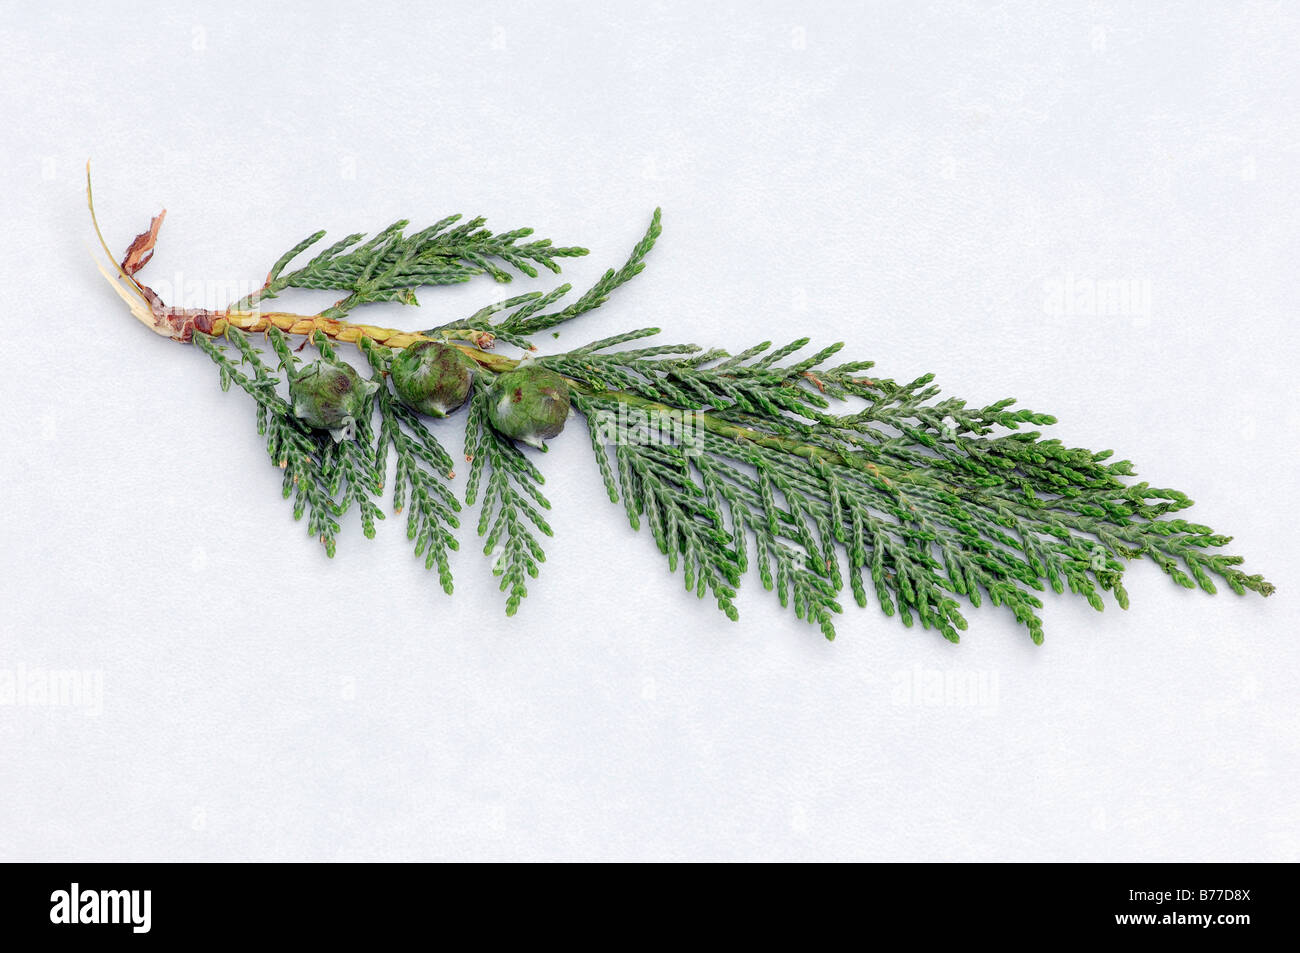 Port-Orford-Cedar (Chamaecyparis lawsoniana), twig with cones - Stock Image